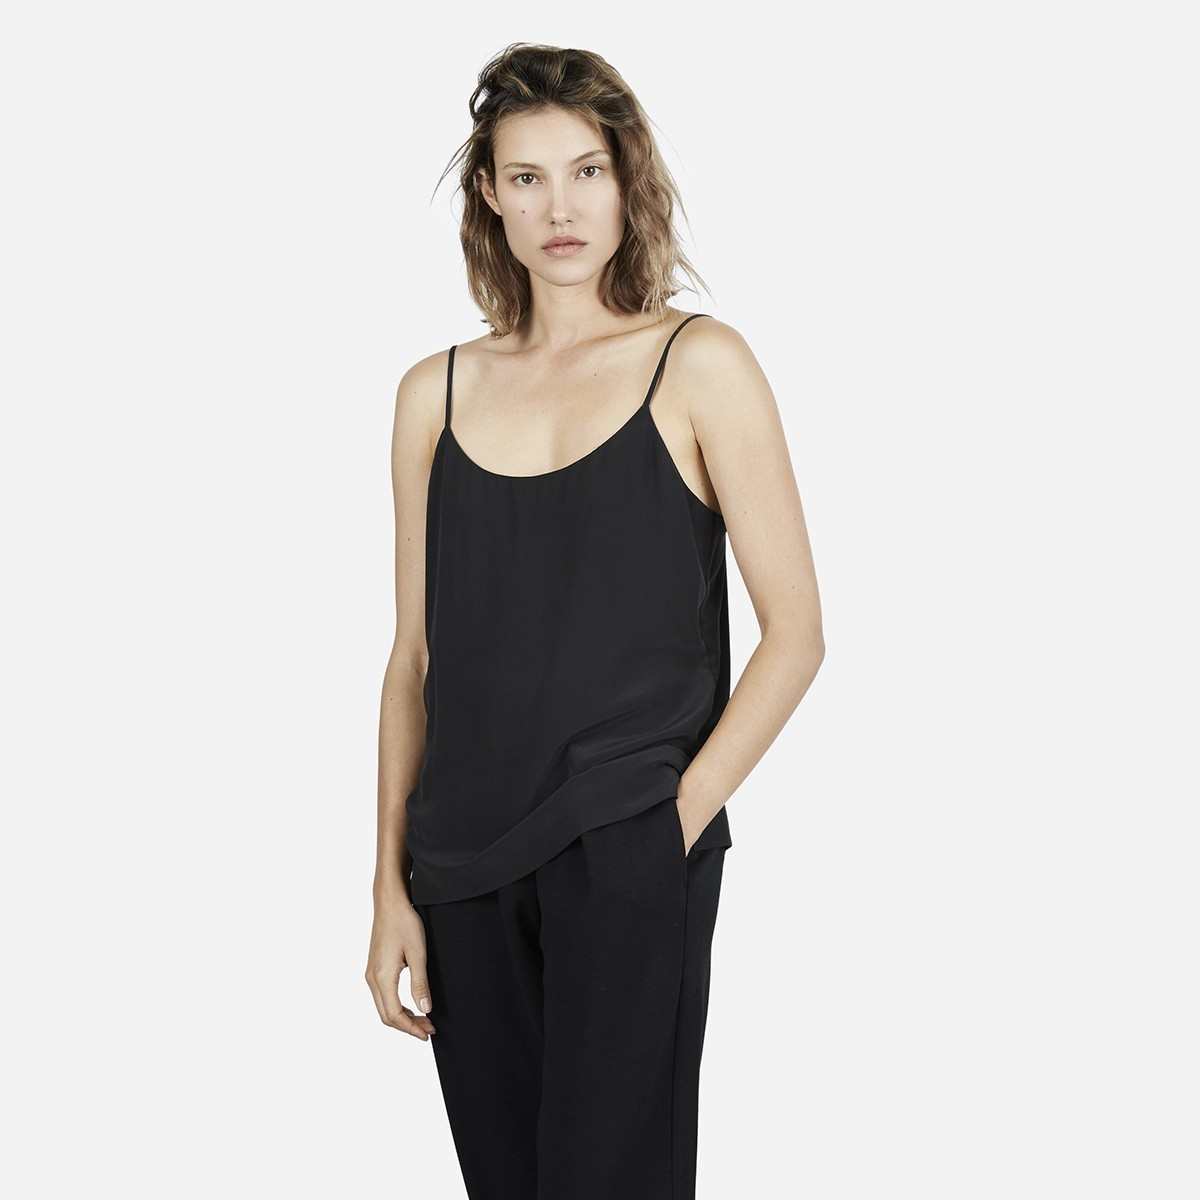 Silk camisole, $58, available at Everlane.